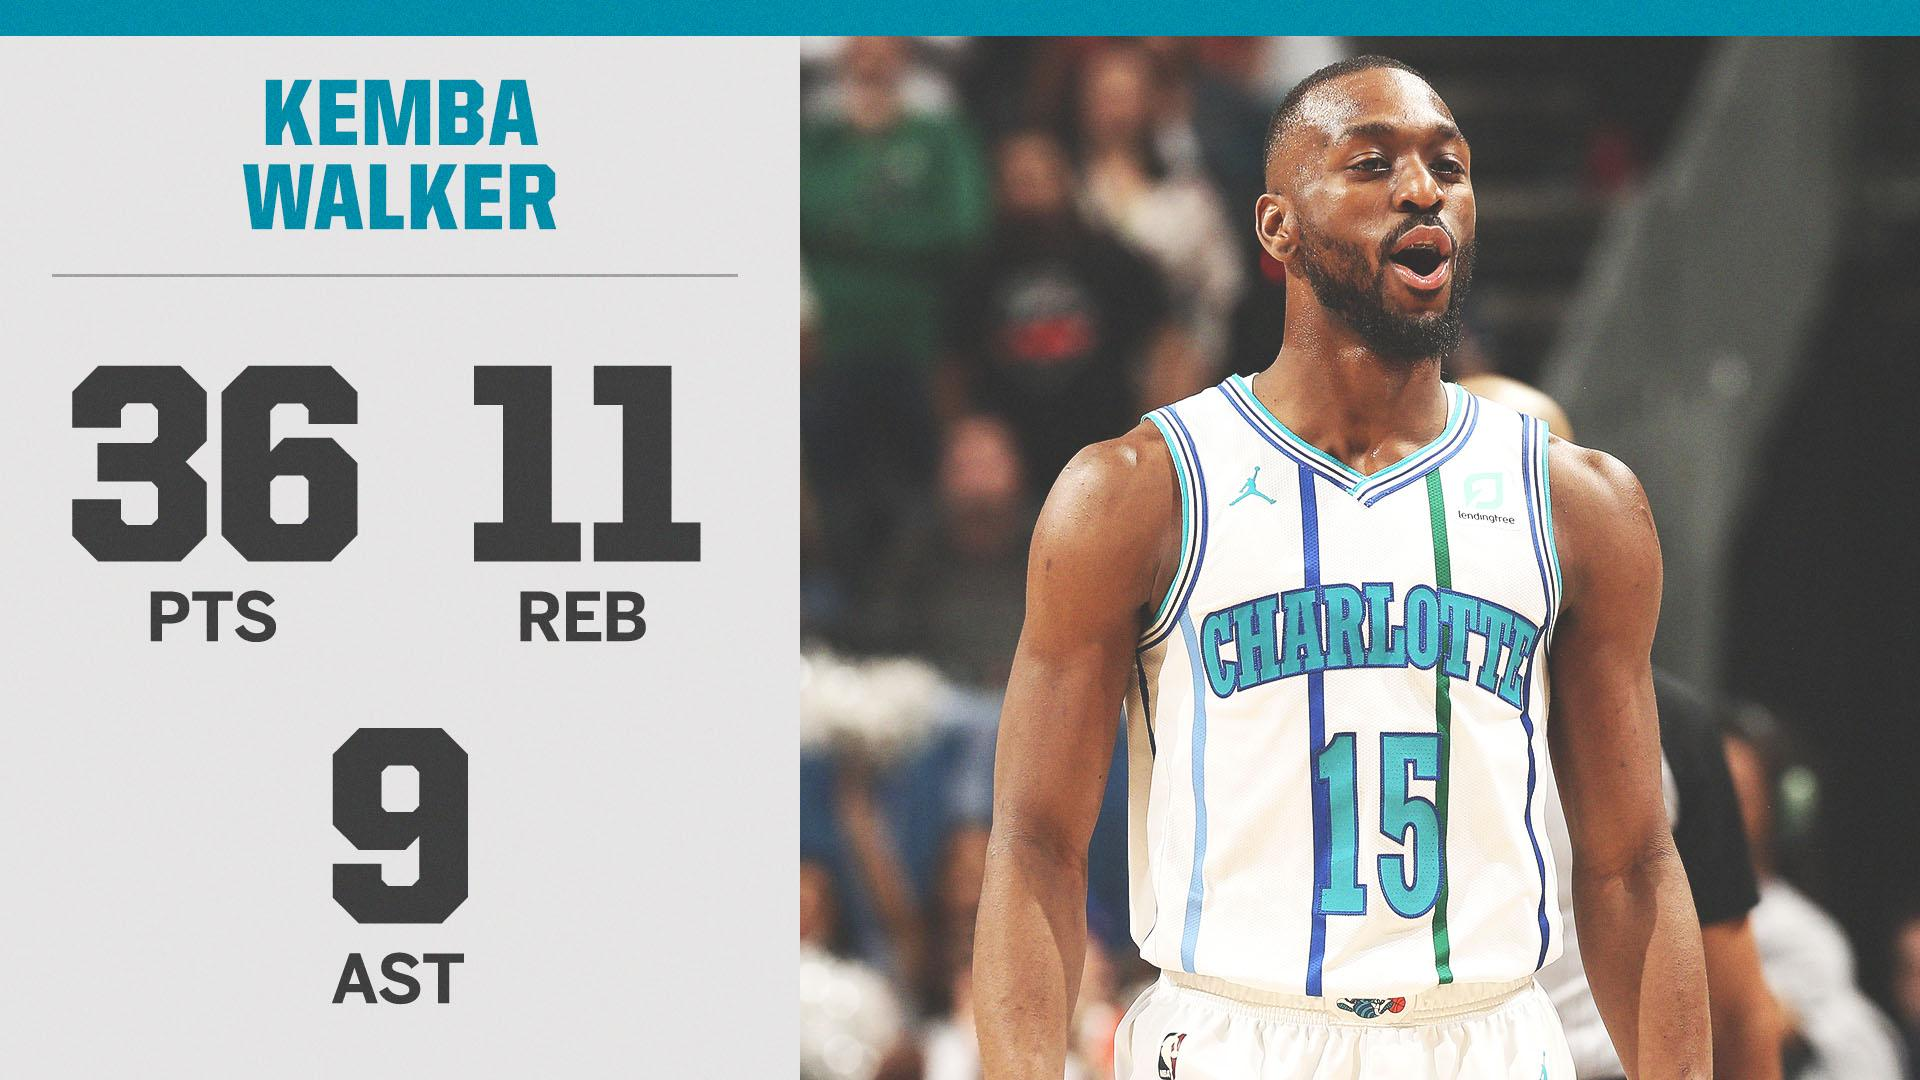 Just call Kemba 'Mr. March' �� https://t.co/LRAUSAL9cN